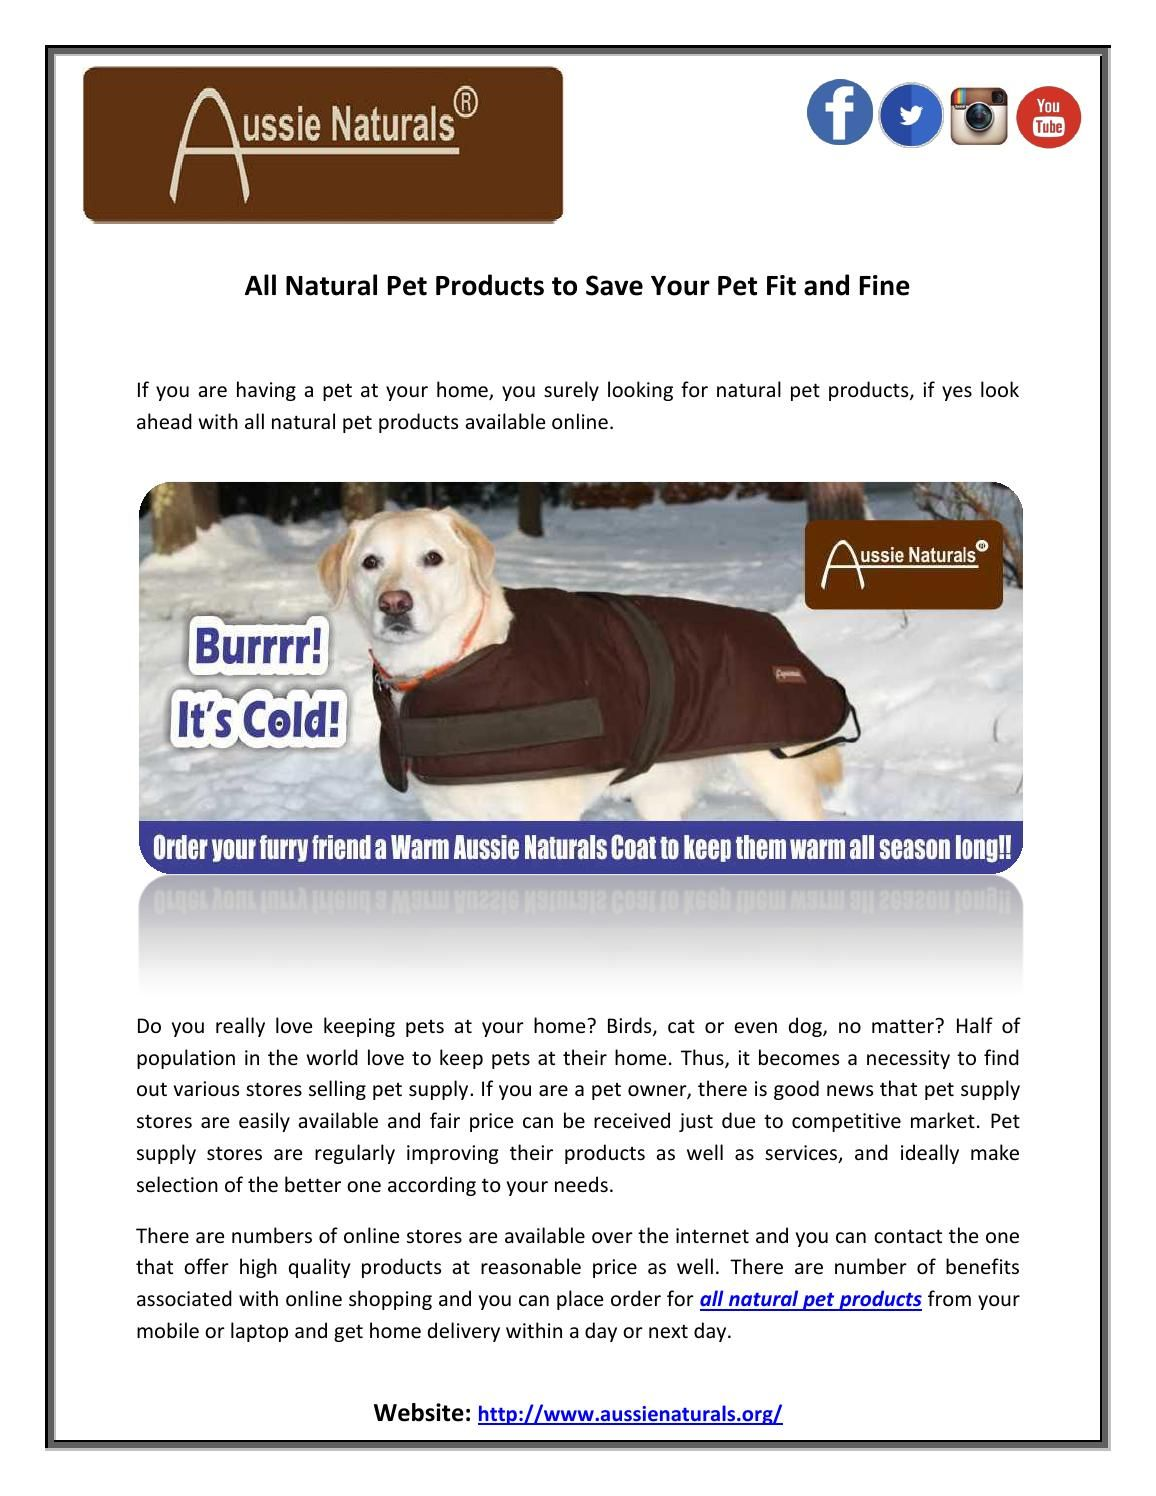 All Natural Pet Products To Save Your Pet Fit And Fine Natural